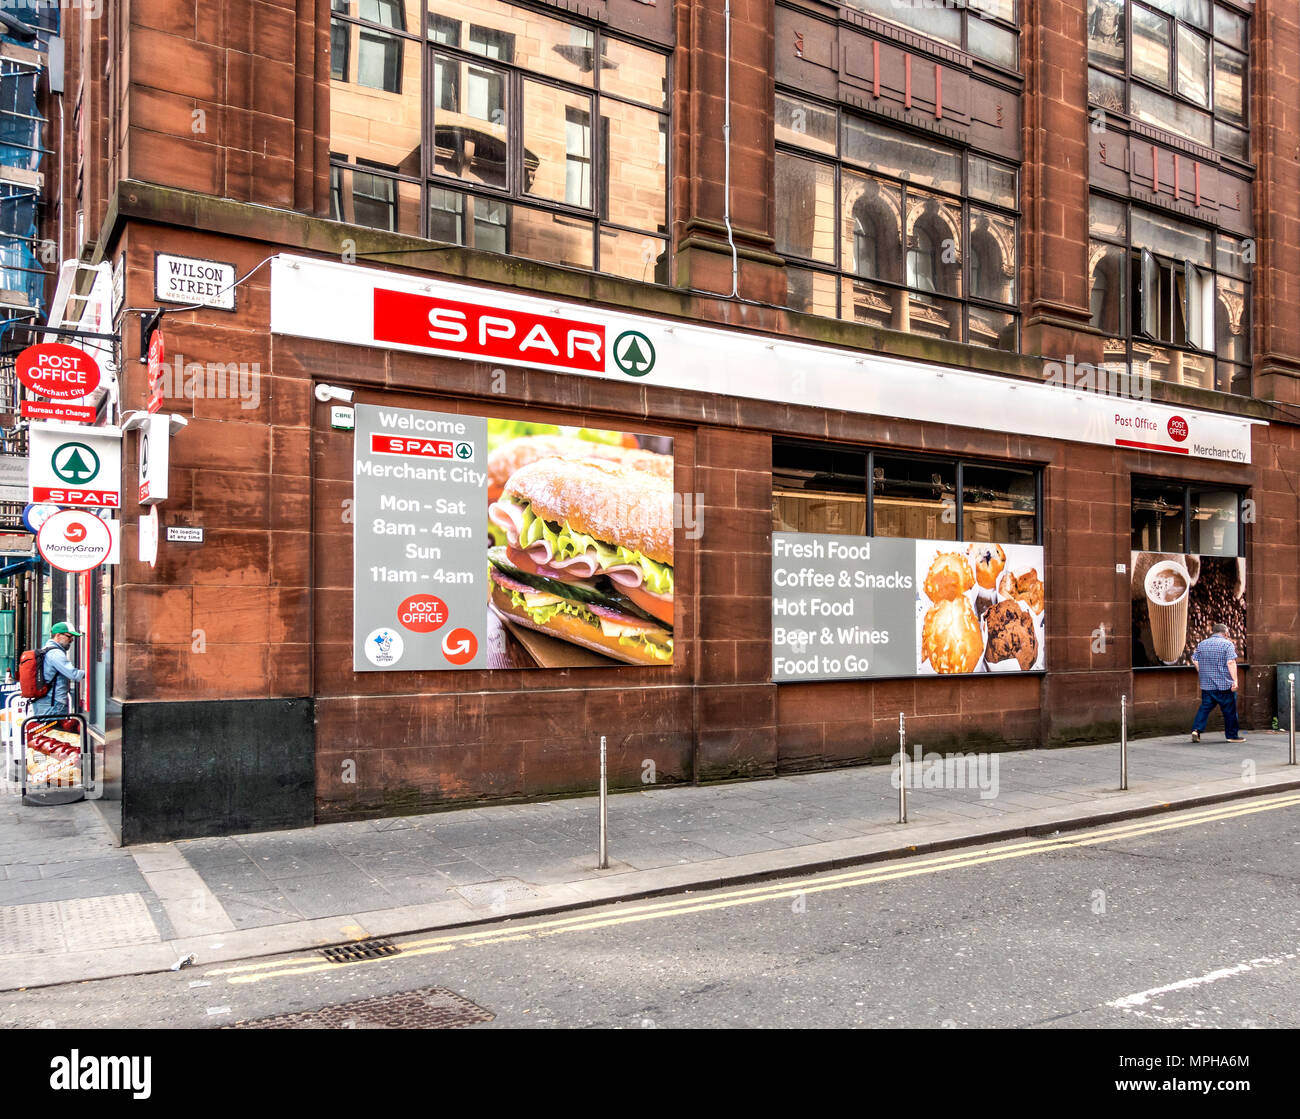 Exterior of the Spar convenience store and post office in the Merchant City area of Glasgow, Scotland, UK - Stock Image